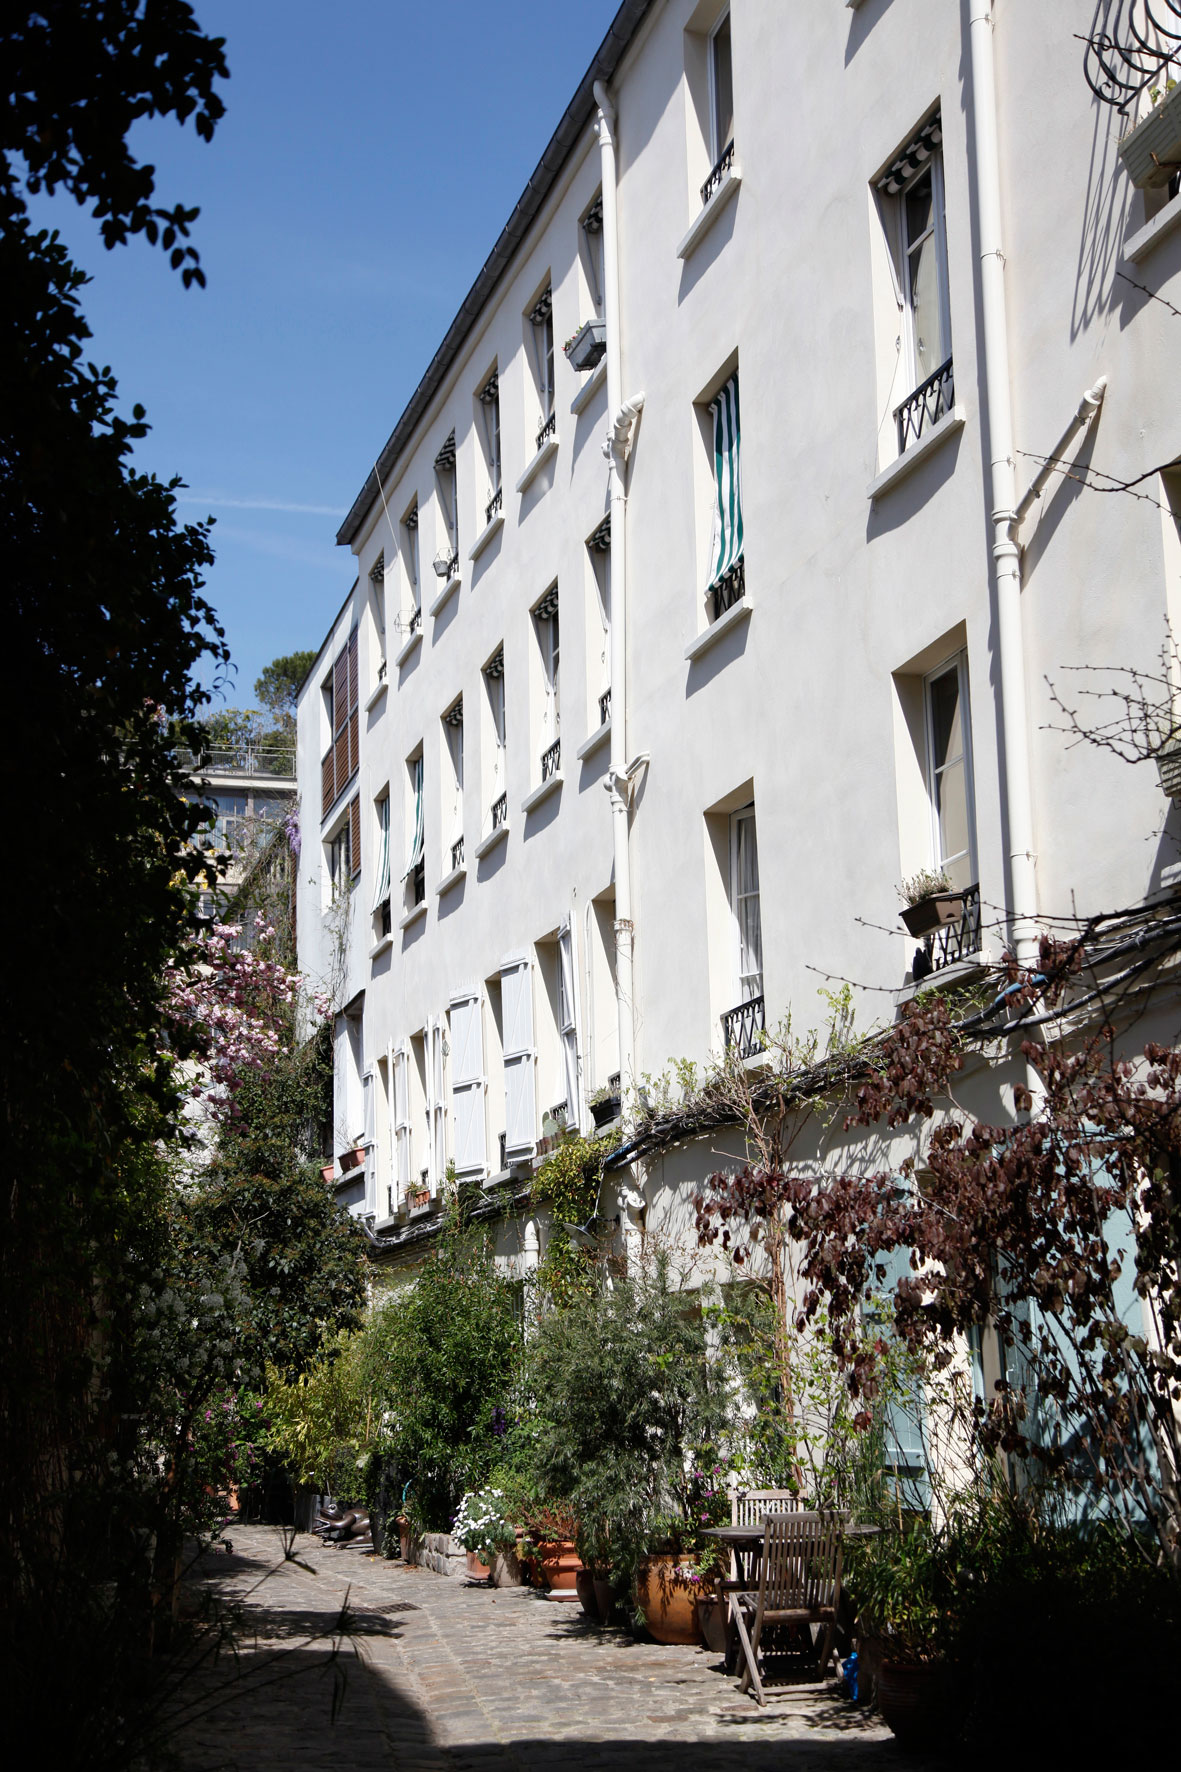 promenade-paris-capitale-decouverte-quartier-typique-11e